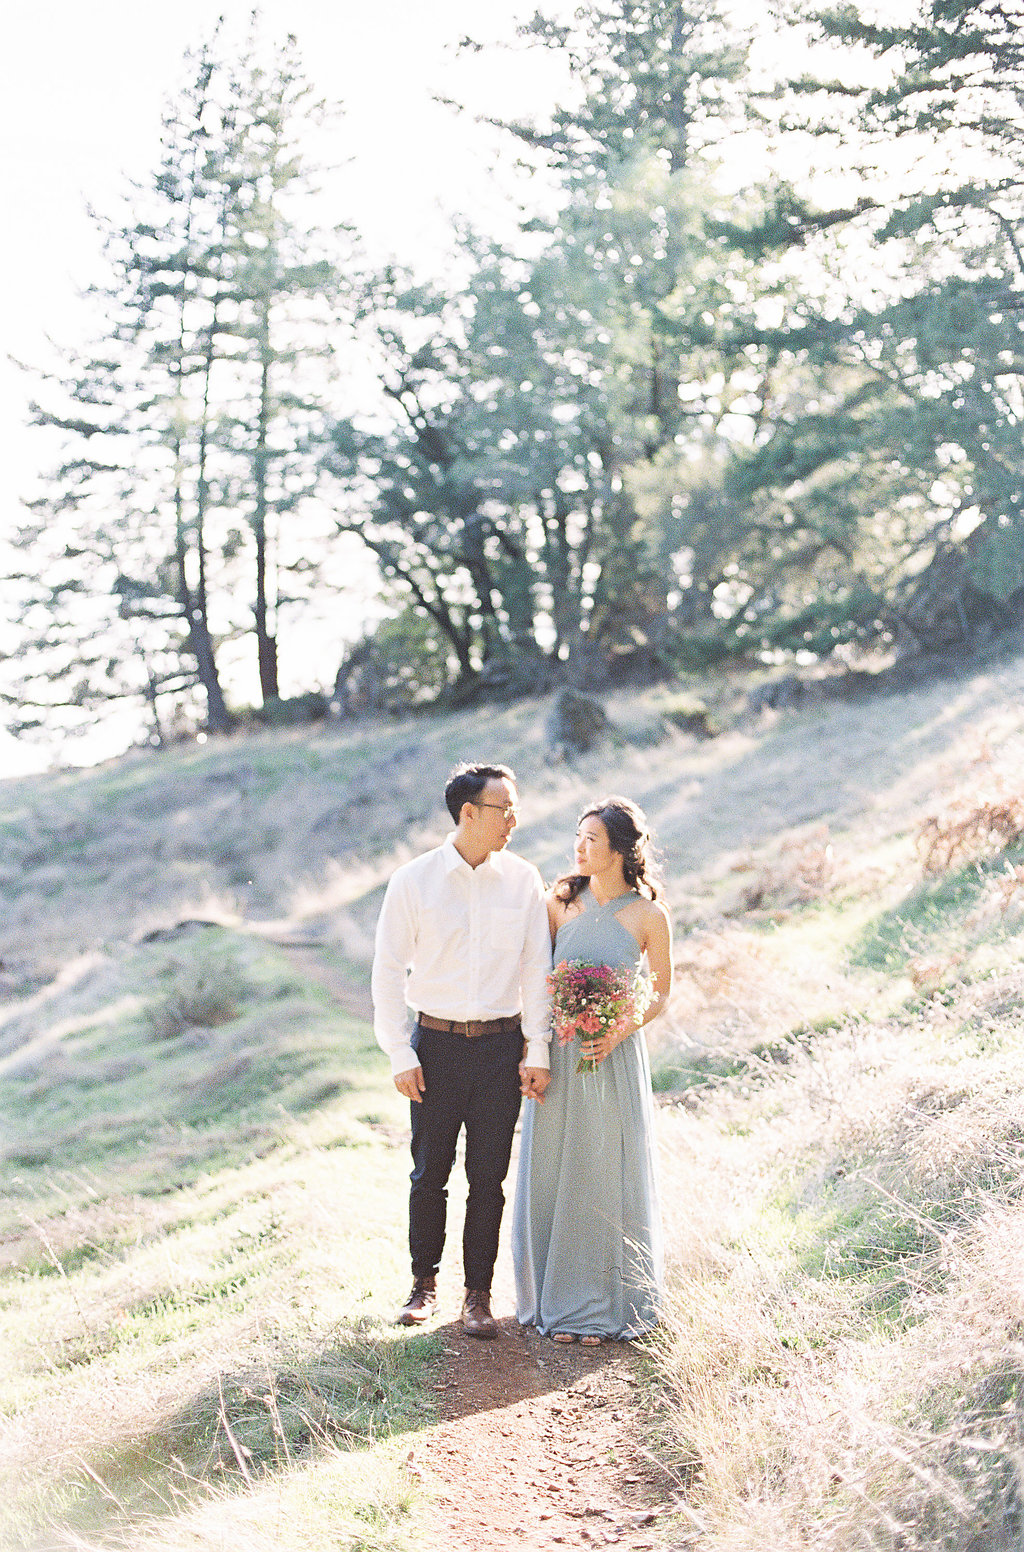 California Hills Engagement Session | California Photographer | Stephanie Gan Photography | Joy Wed | Canadian Wedding Blog | Canmore Wedding Planner | Sunset Engagement Session